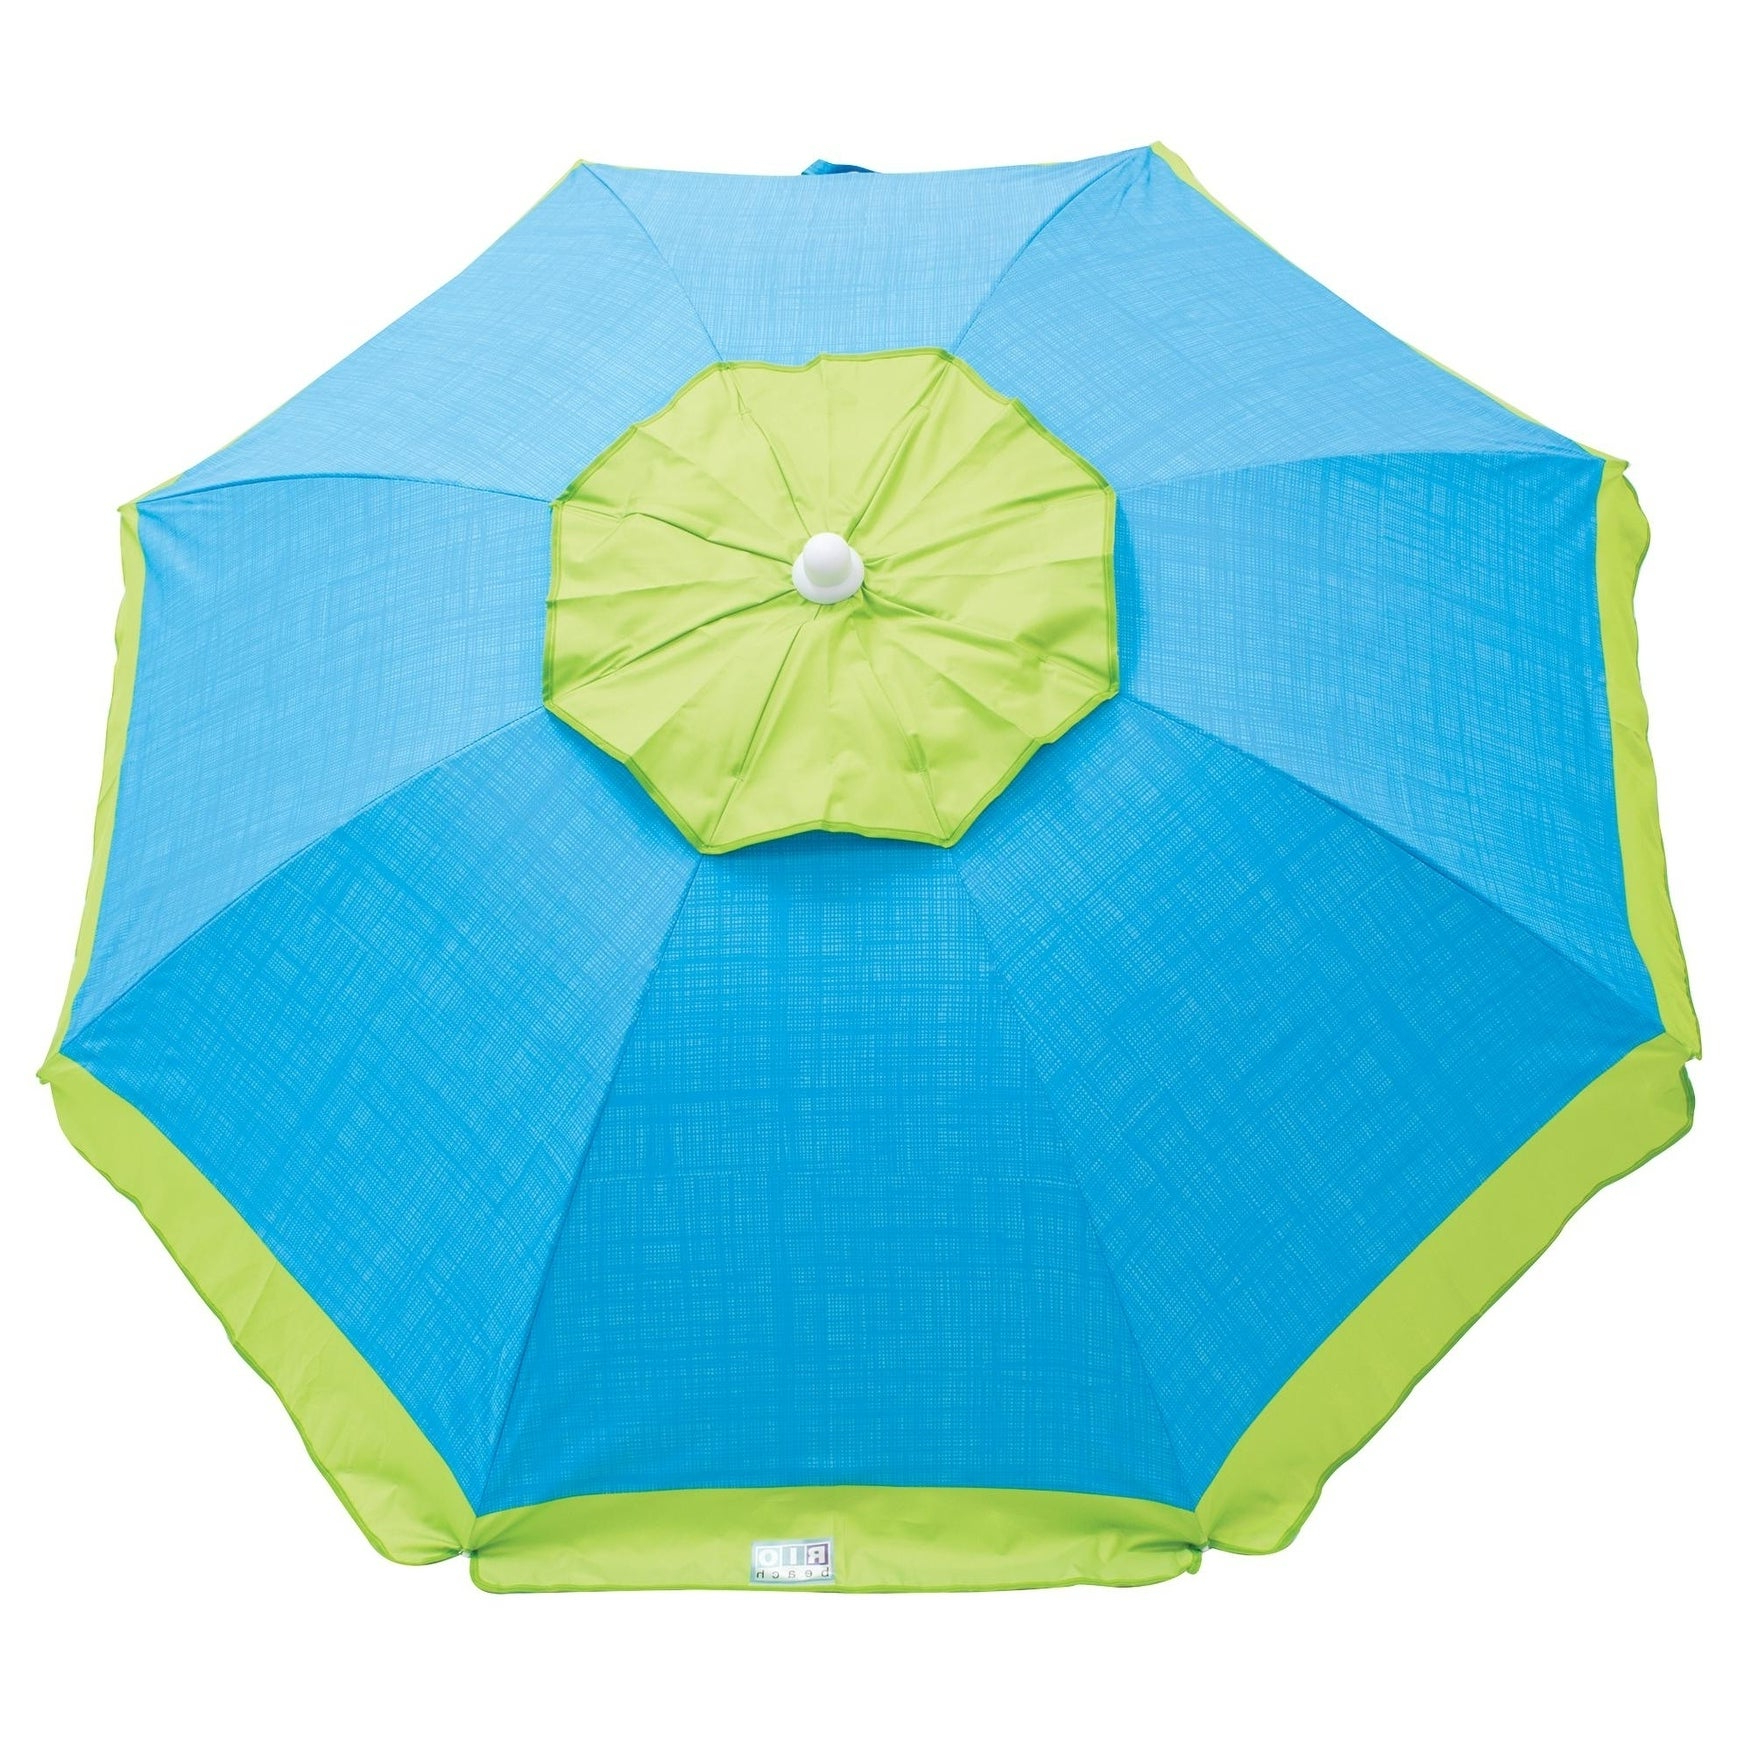 Latest Rio Beach 6 Ft. Tilt Beach Umbrella With Wind Vent For Margaritaville Green And Blue Striped Beach With Built In Sand Anchor Umbrellas (Gallery 6 of 20)